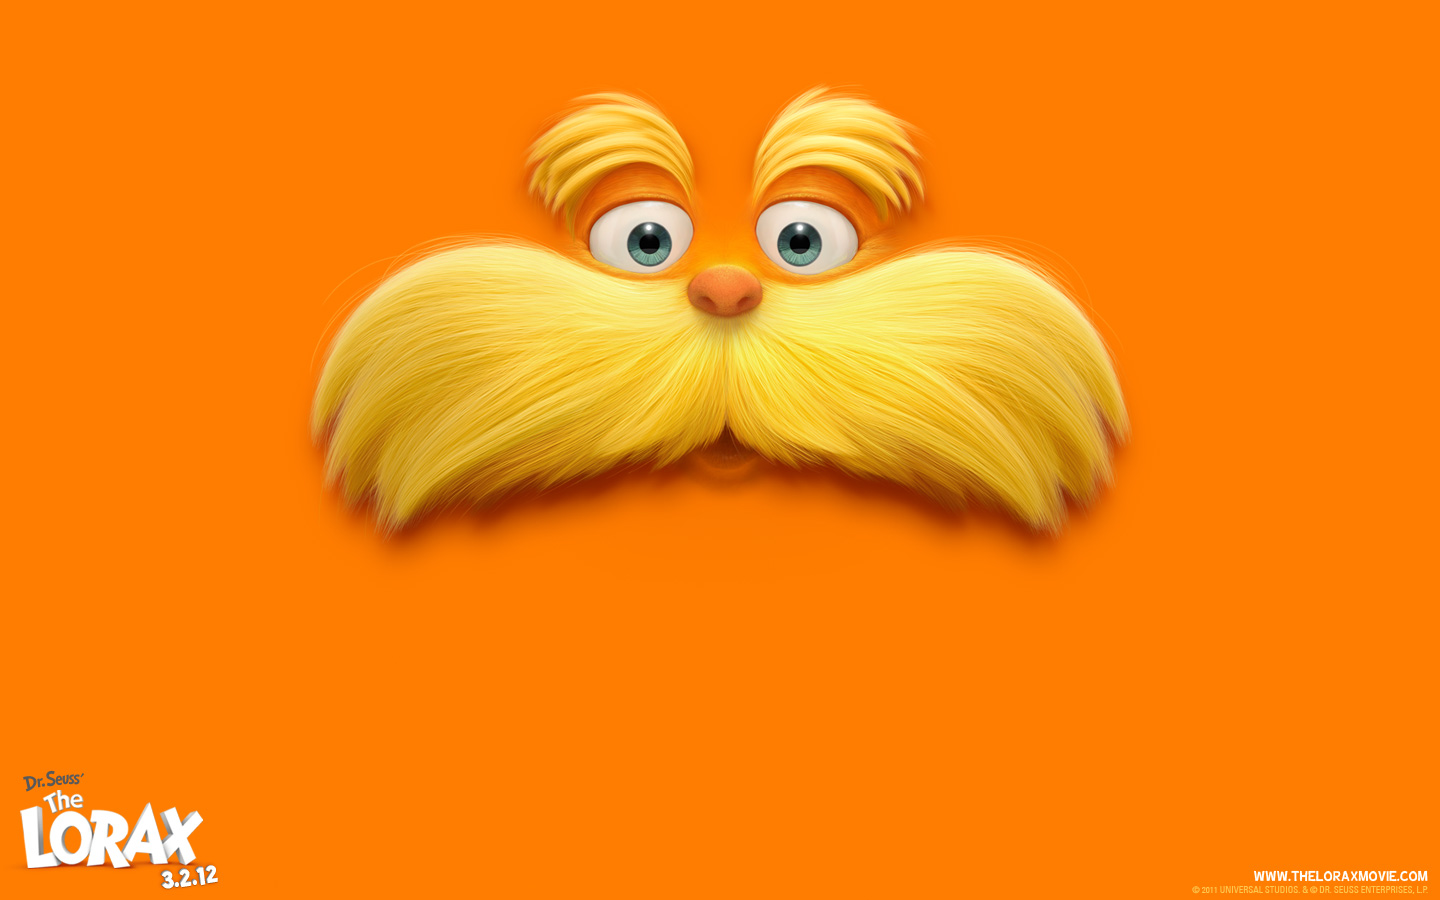 http://simplywallpaper.net/pictures/2011/11/02/Dr-Seuss-The-Lorax-Movie-wallpaper.jpg